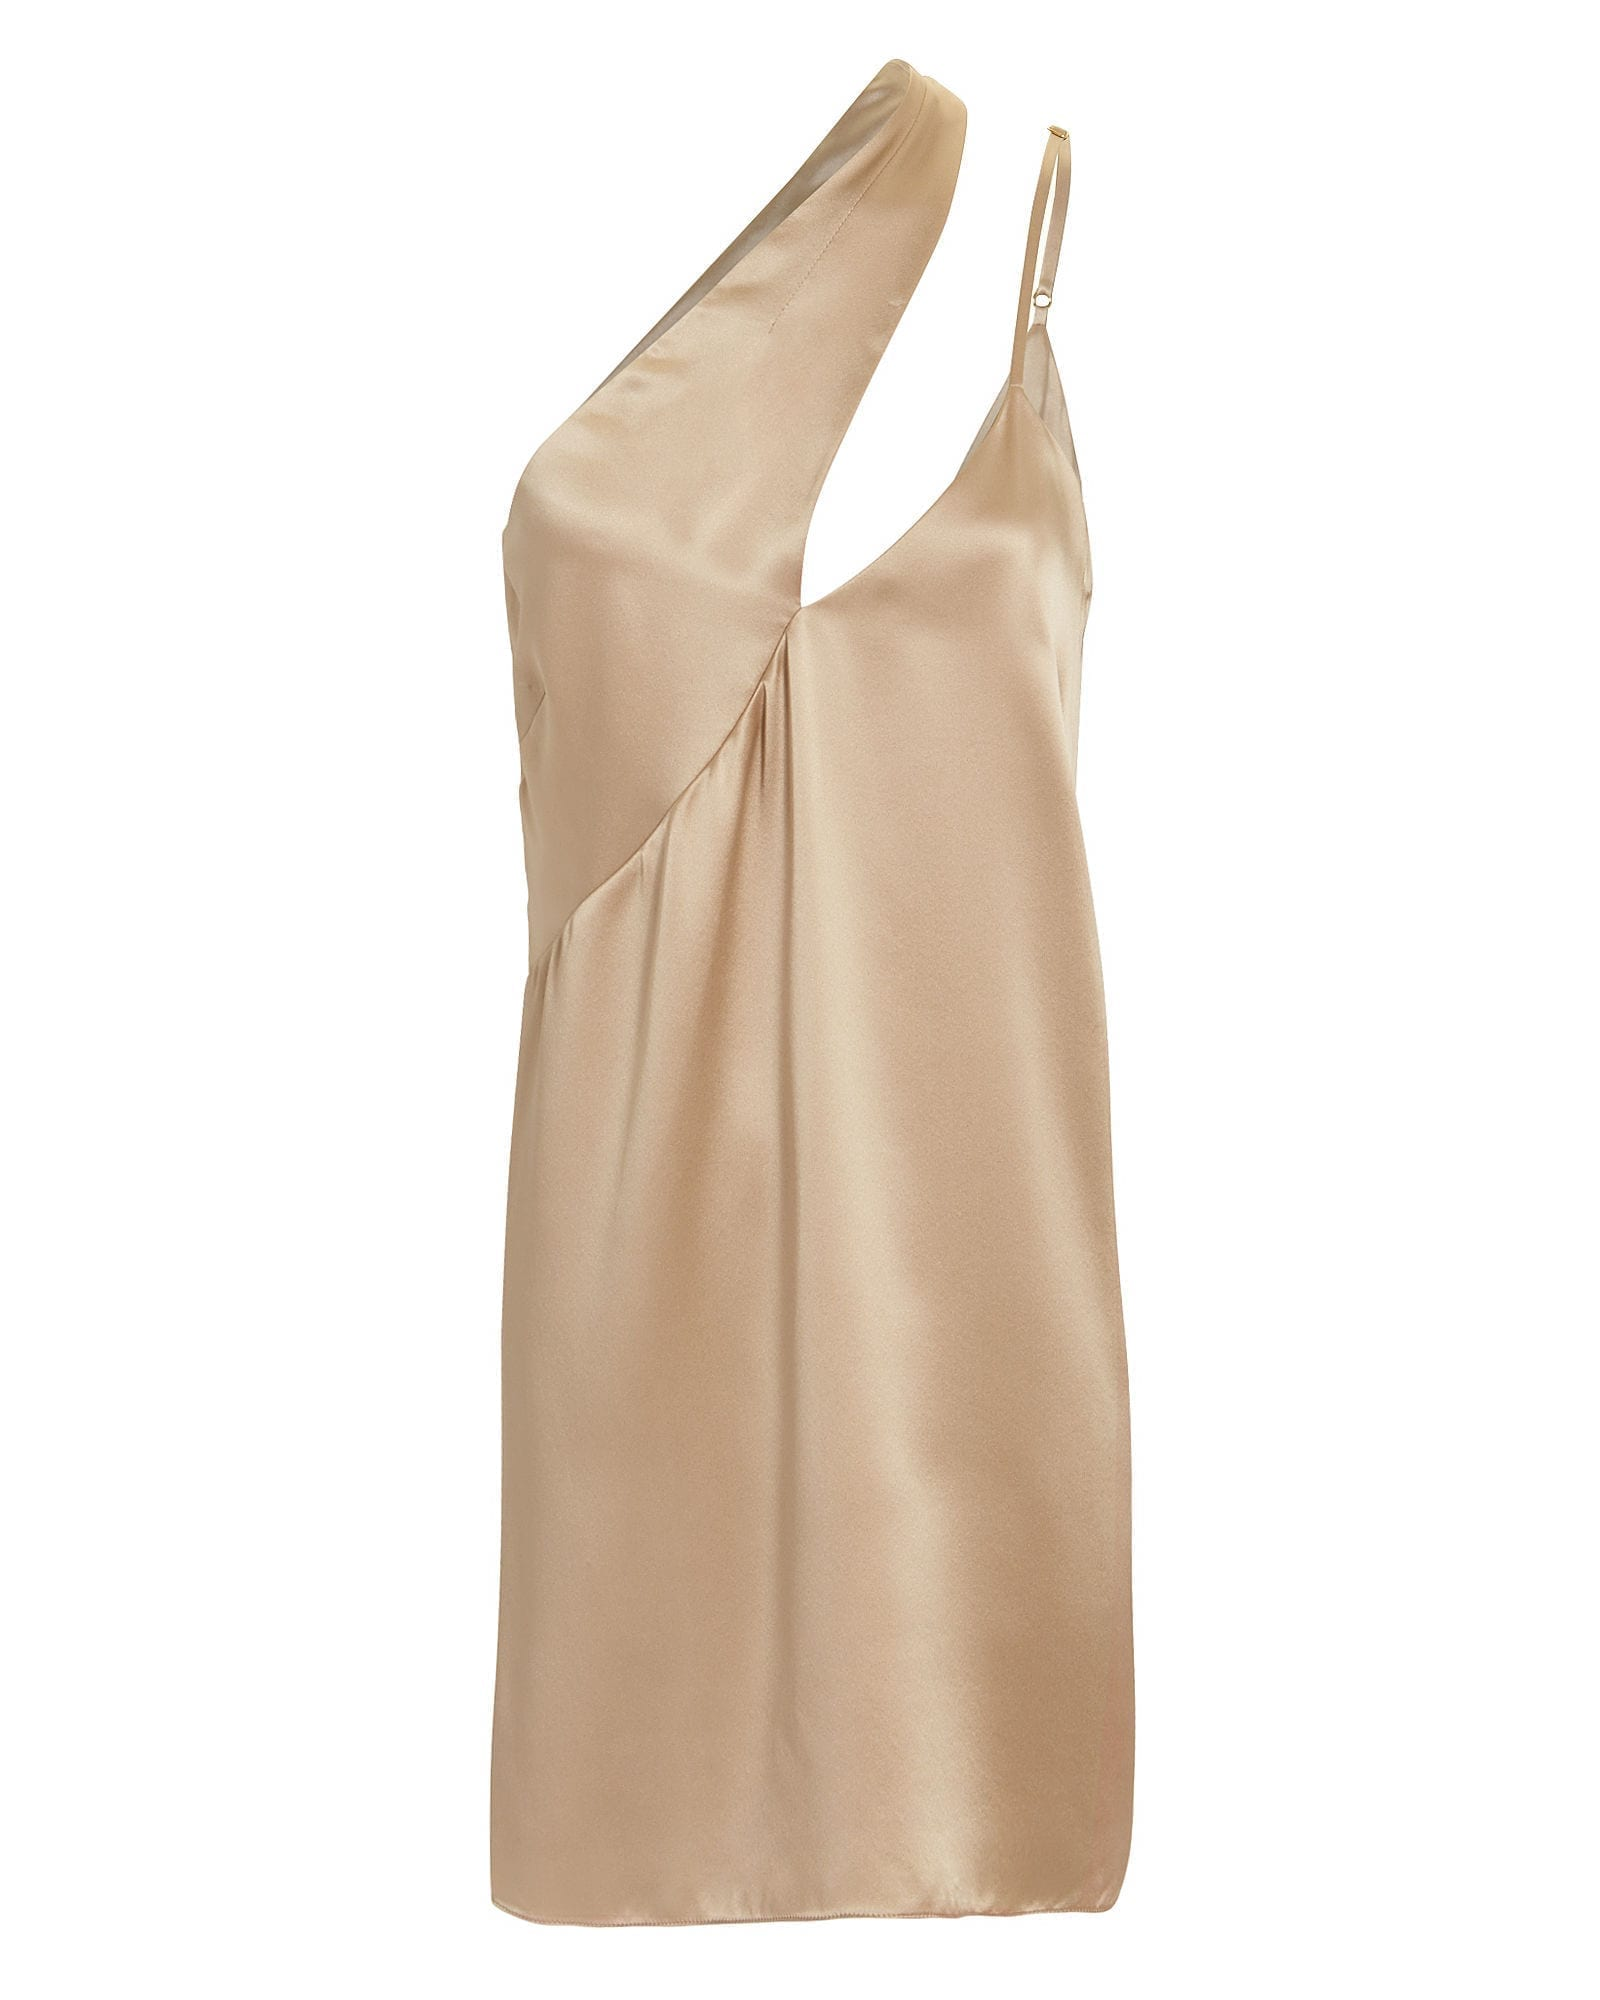 07e274687680 MICHELLE MASON One Shoulder Mini Gold Dress - We Select Dresses